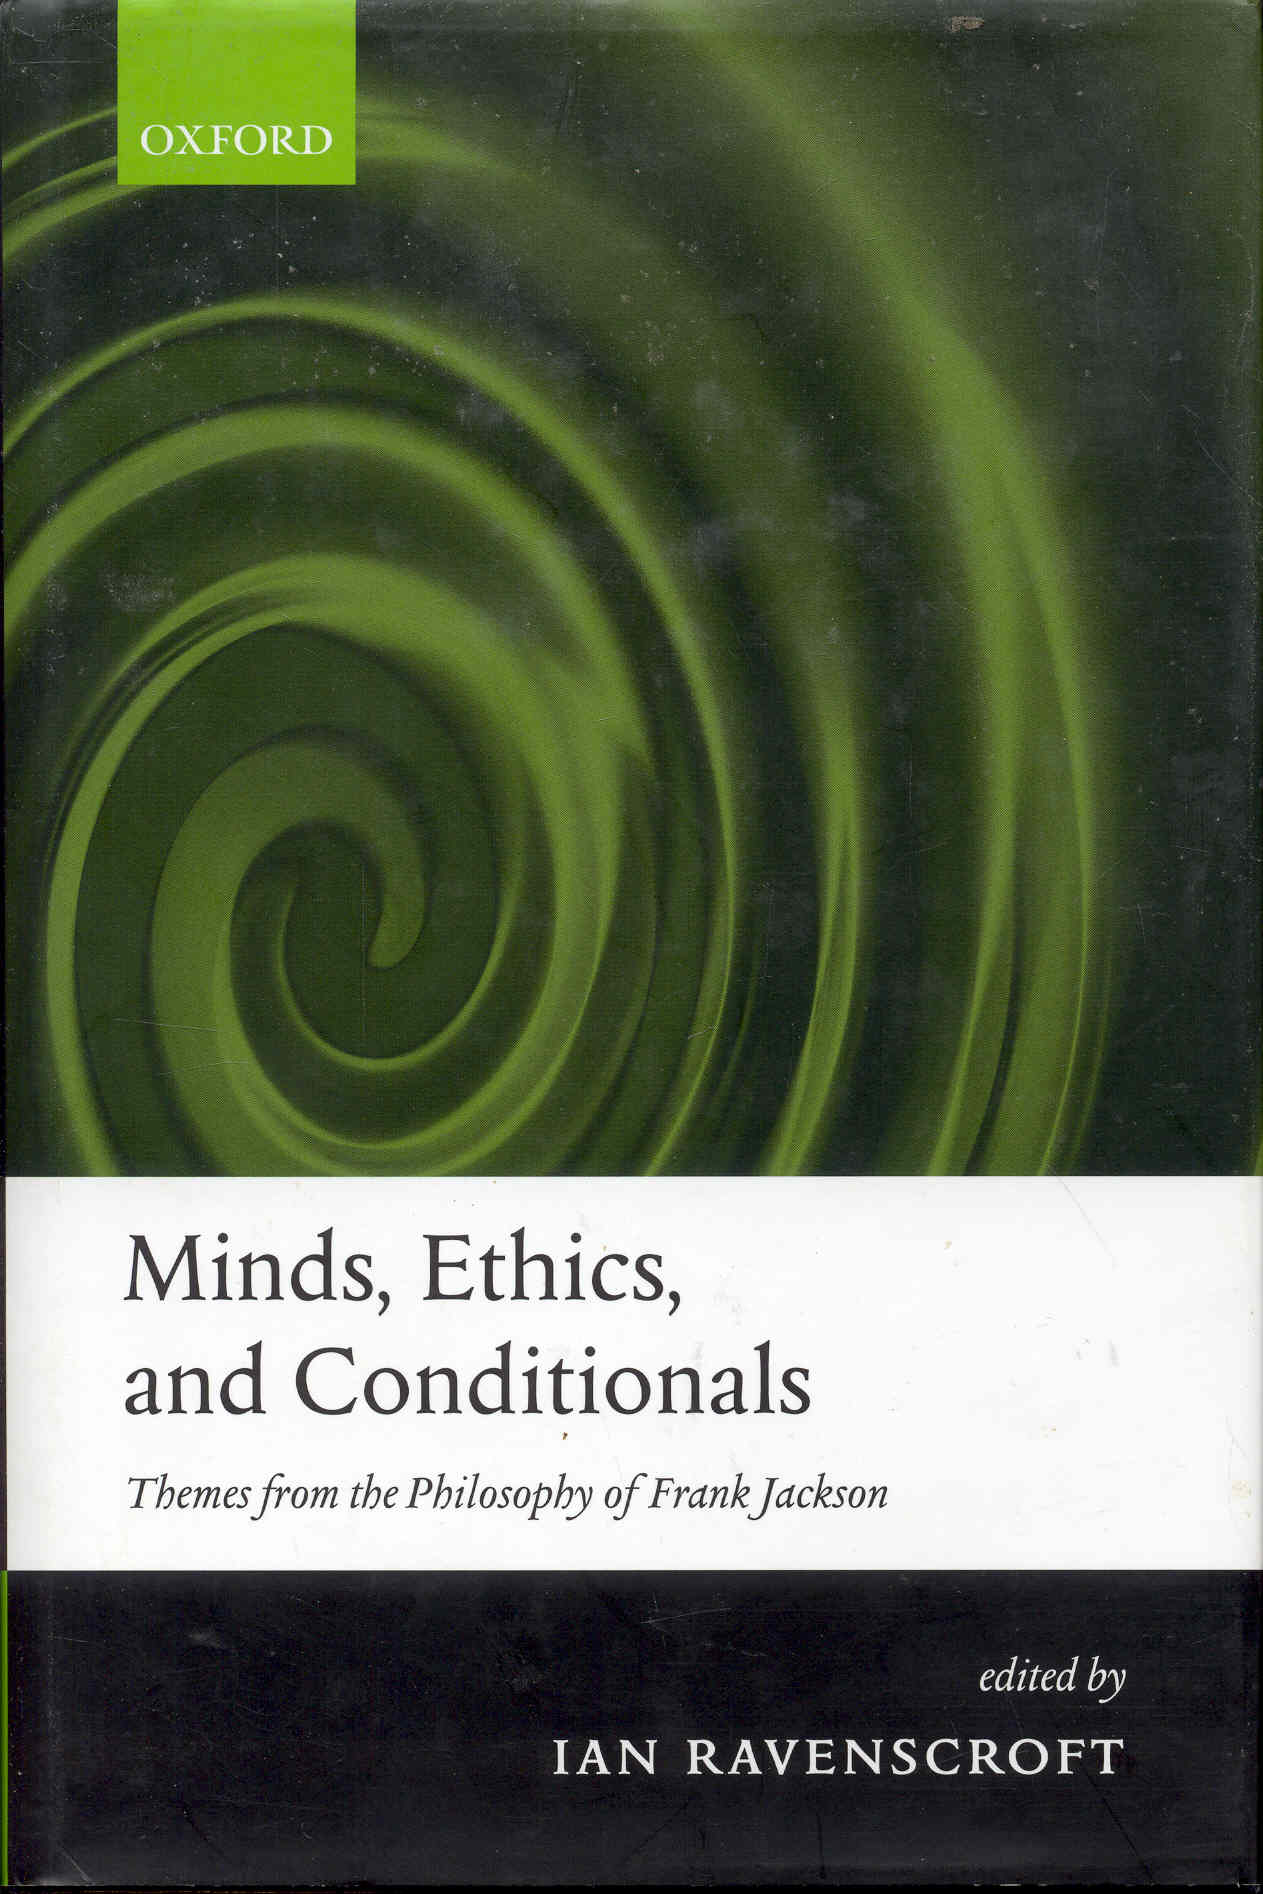 Image for Minds, Ethics, and Conditionals: Themes from the Philosophy of Frank Jackson